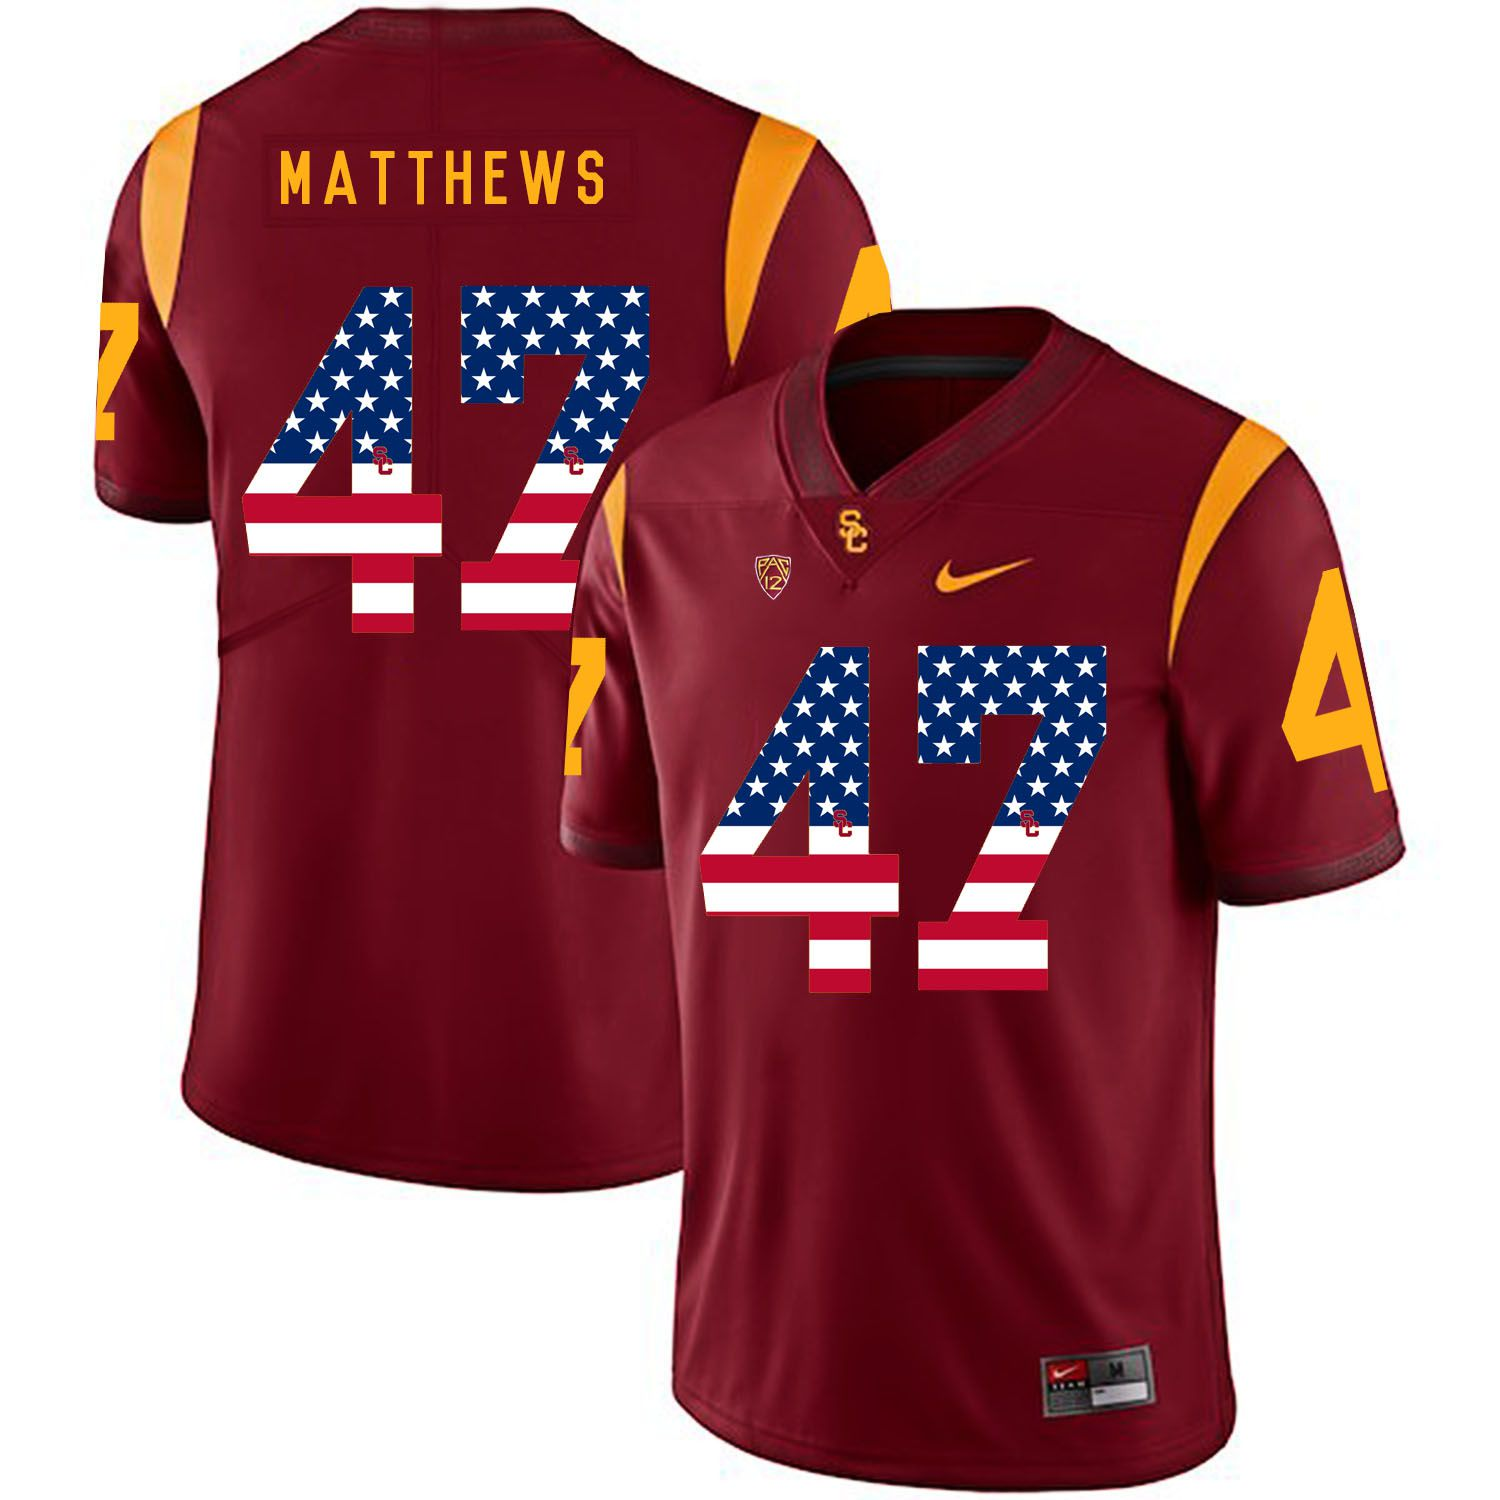 Men USC Trojans 47 Matthews Red Flag Customized NCAA Jerseys